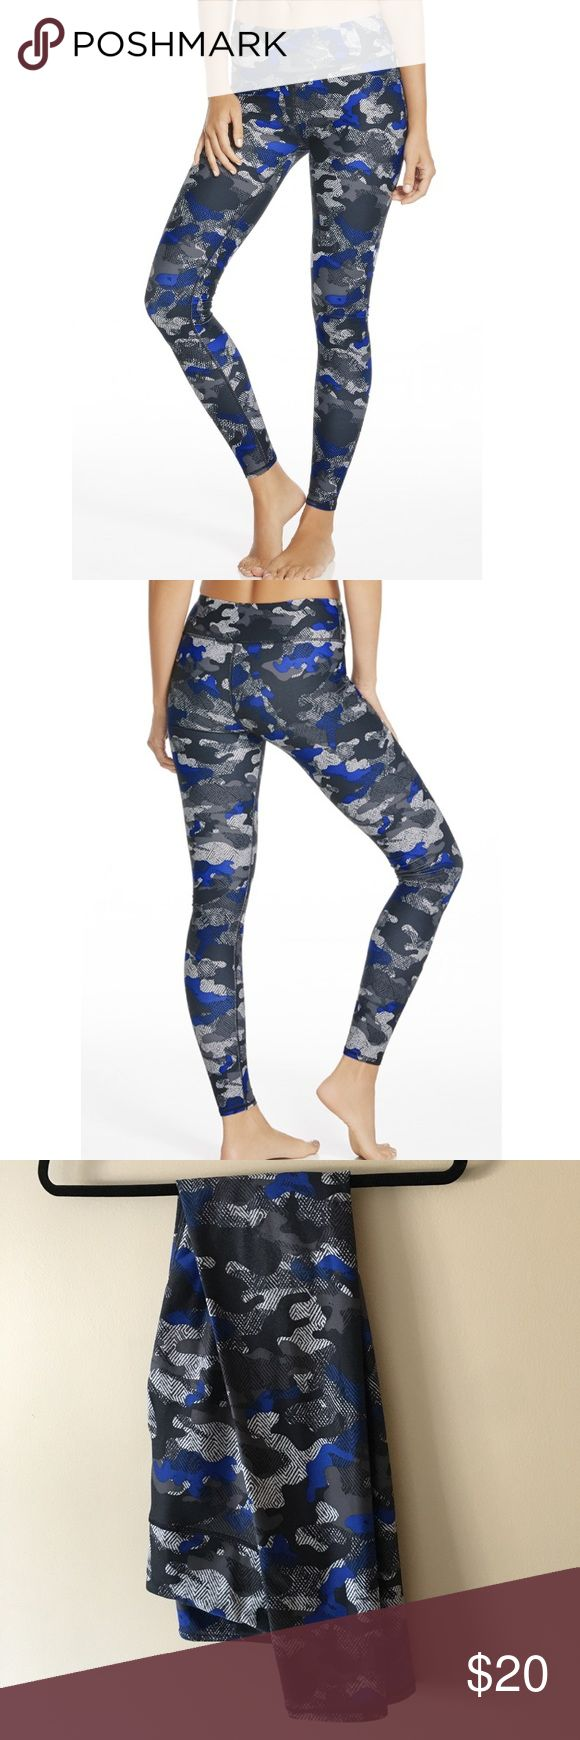 Blue camo yoga pants Kate Hudson's brand, Fabletics | full length | great quality/durable | not see through | cute for running errands too. Fabletics Pants Leggings